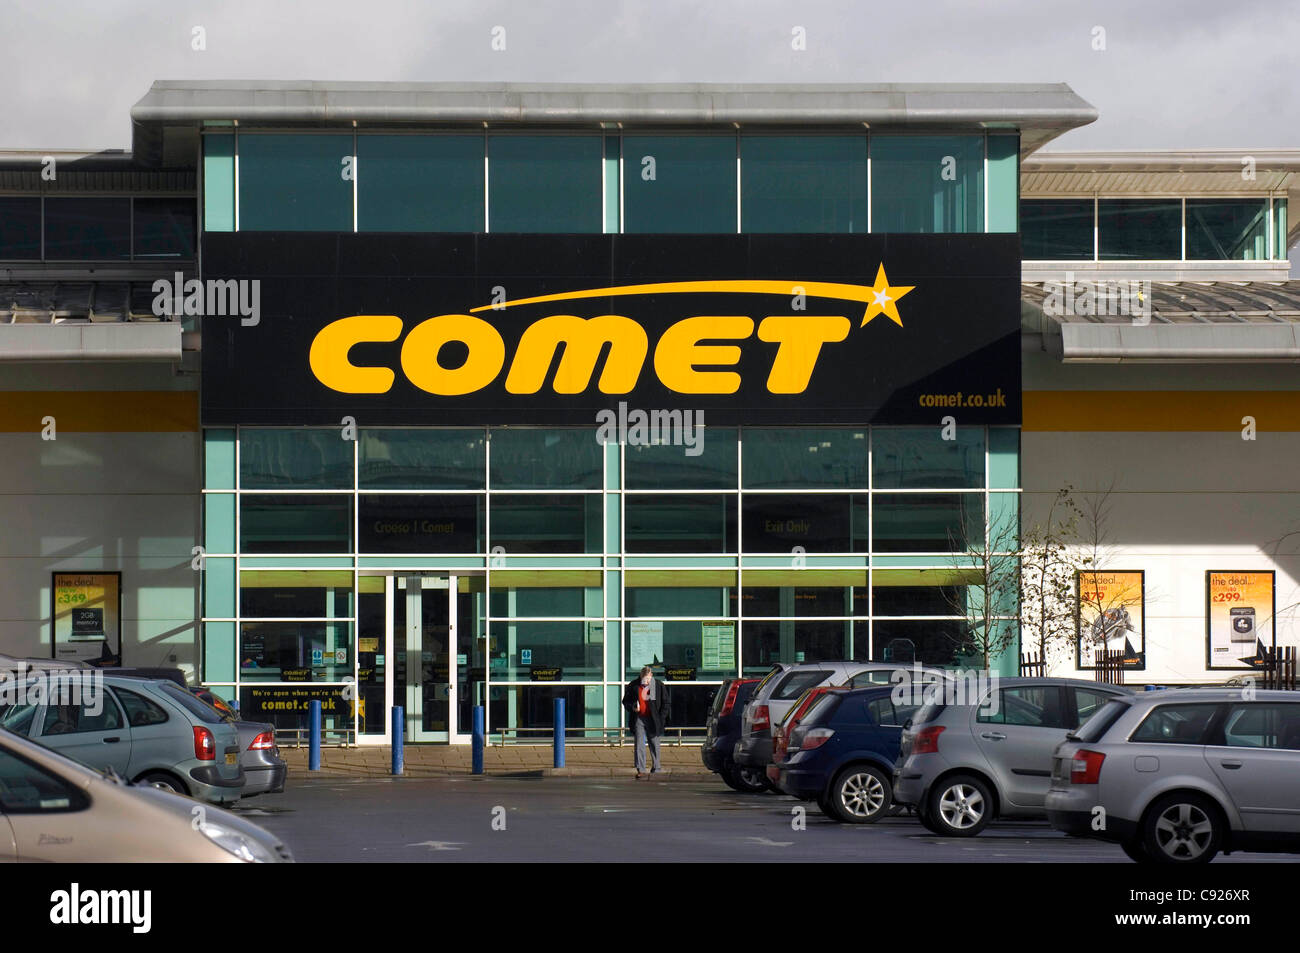 The Comet store at Maesglas Retail Park in Newport, South Wales. (file picture). Anglo-French electrical goods retailer - Stock Image